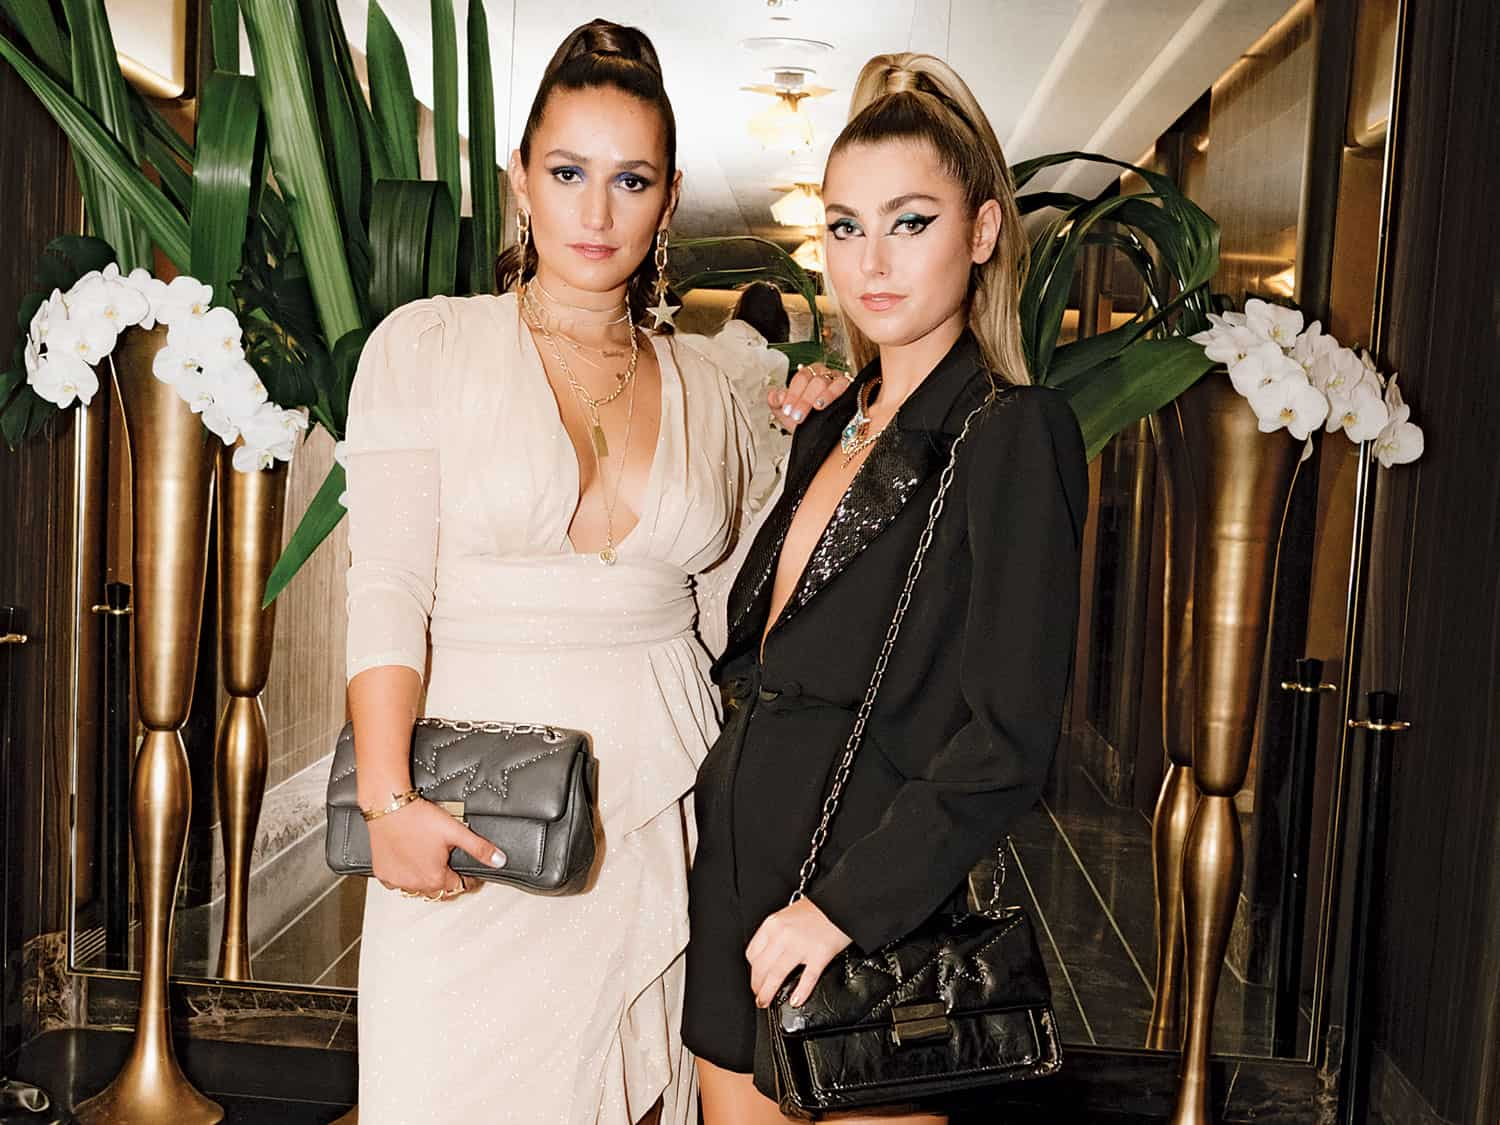 Yin2MyYang Co-founders, Charlotte and Sophie Bickley, on Influencer Life During Fashion Week